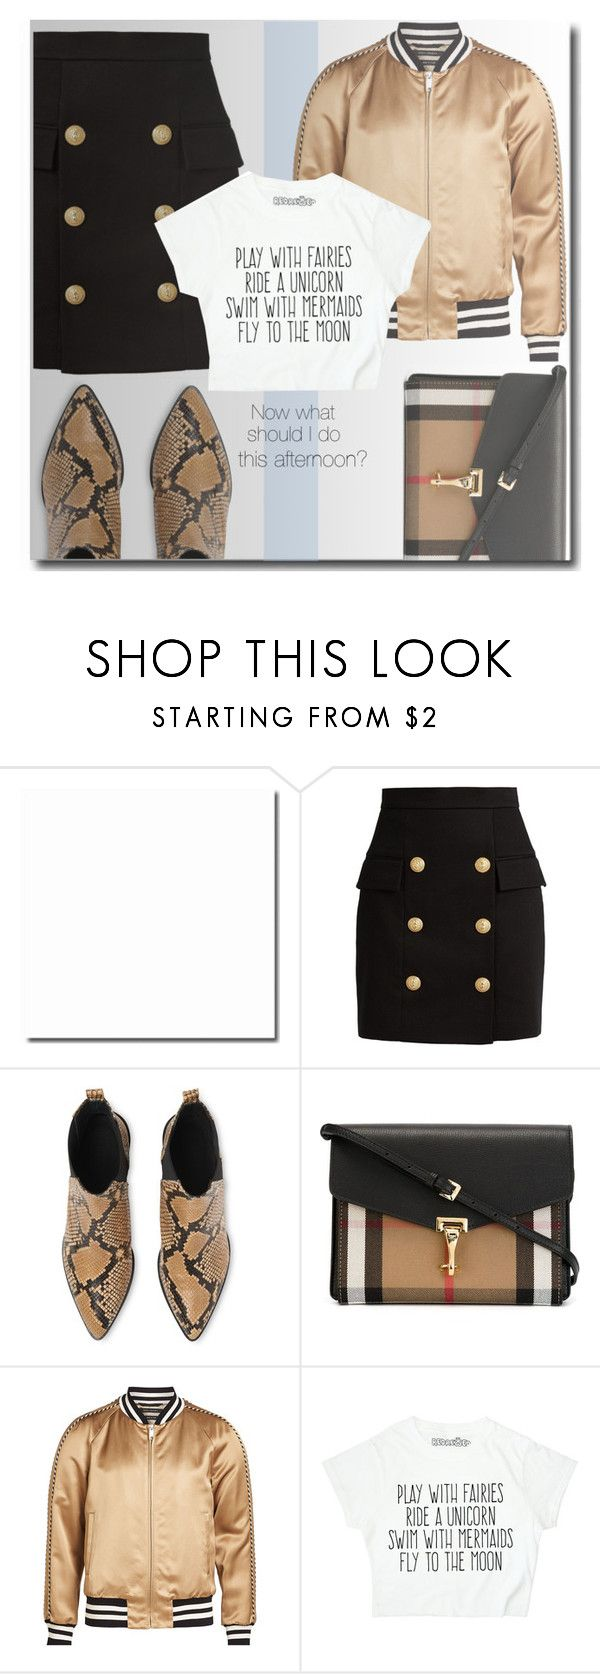 """Now what should I do this afternoon?"" by interesting-times ❤ liked on Polyvore featuring Balmain, Whistles, Burberry, Marc Jacobs and statementtshirt"